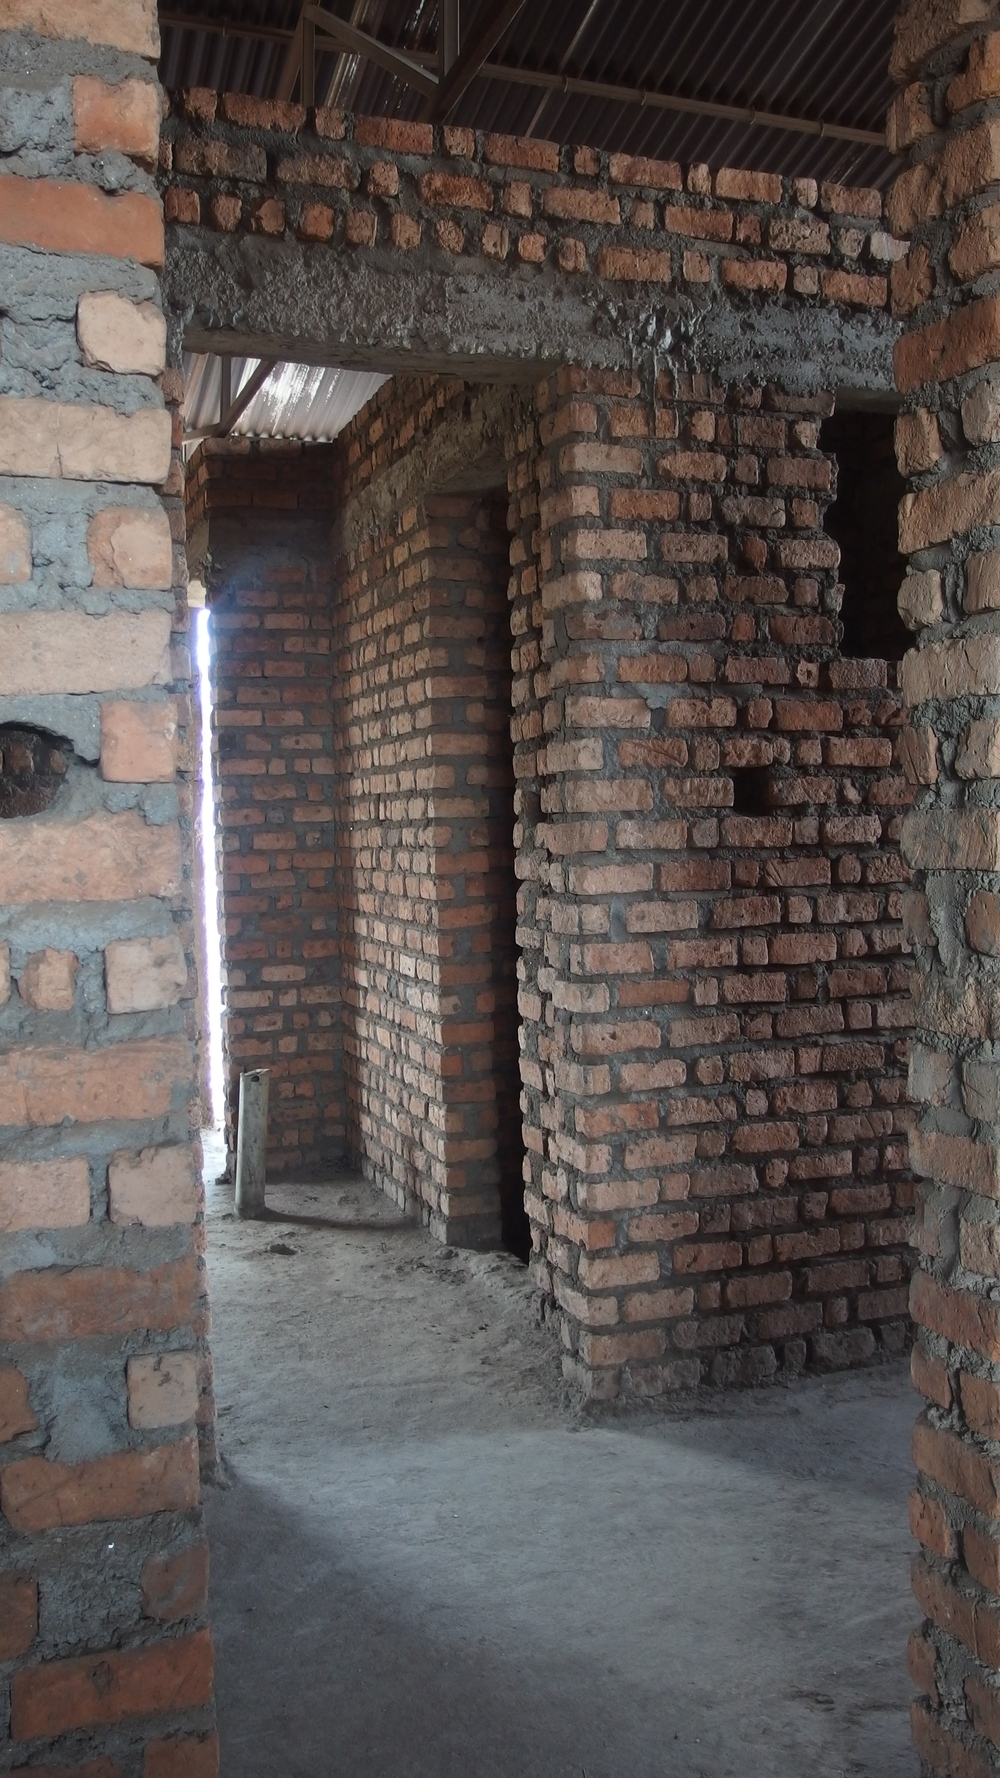 Recognizing lack of safe housing as a barrier to education, Let Africa Live began construction on a dormitory for its female students in 2010.  They needed to stop halfway due to insufficient funds.  Mwendo Congo is stepping up to raise what is left to bring this project to completion.